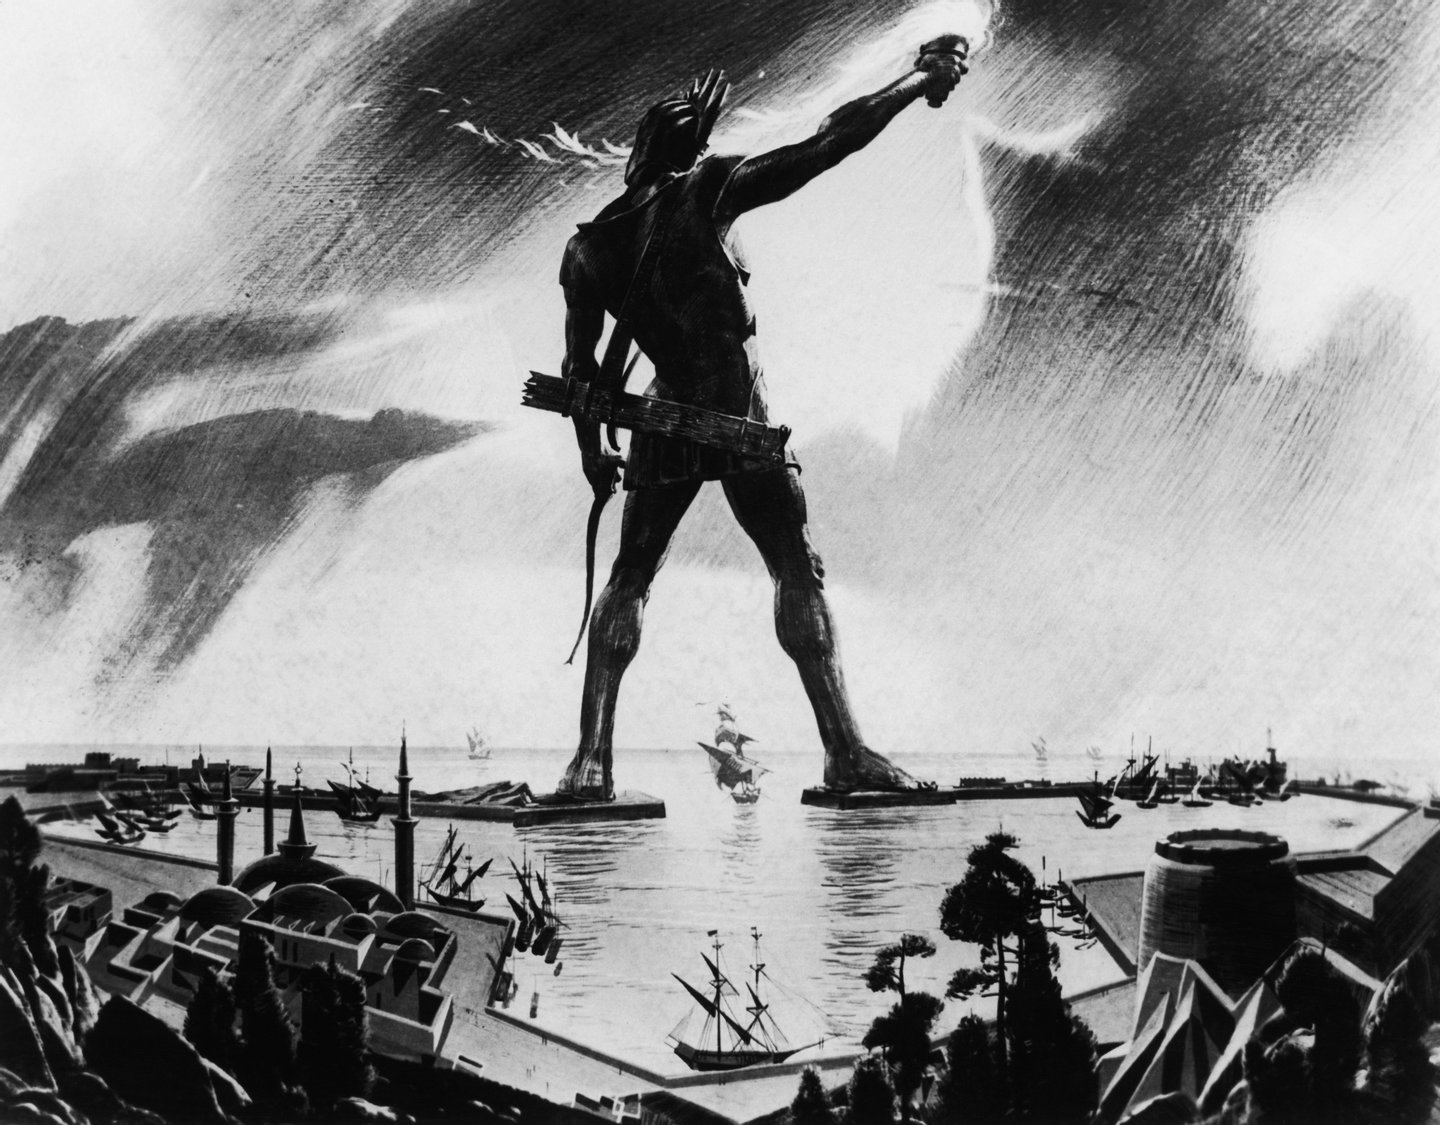 The Colossus of Rhodes, a giant statue of the sun god Helios measuring 34 metres, towers over the island's harbour, circa 250 BC. Completed in 280 BC, it was one of the Seven Wonders of the Ancient World, but was destroyed by an earthquake in 224 BC. A painting by Mario Larrinaga. (Photo by Three Lions/Hulton Archive/Getty Images)